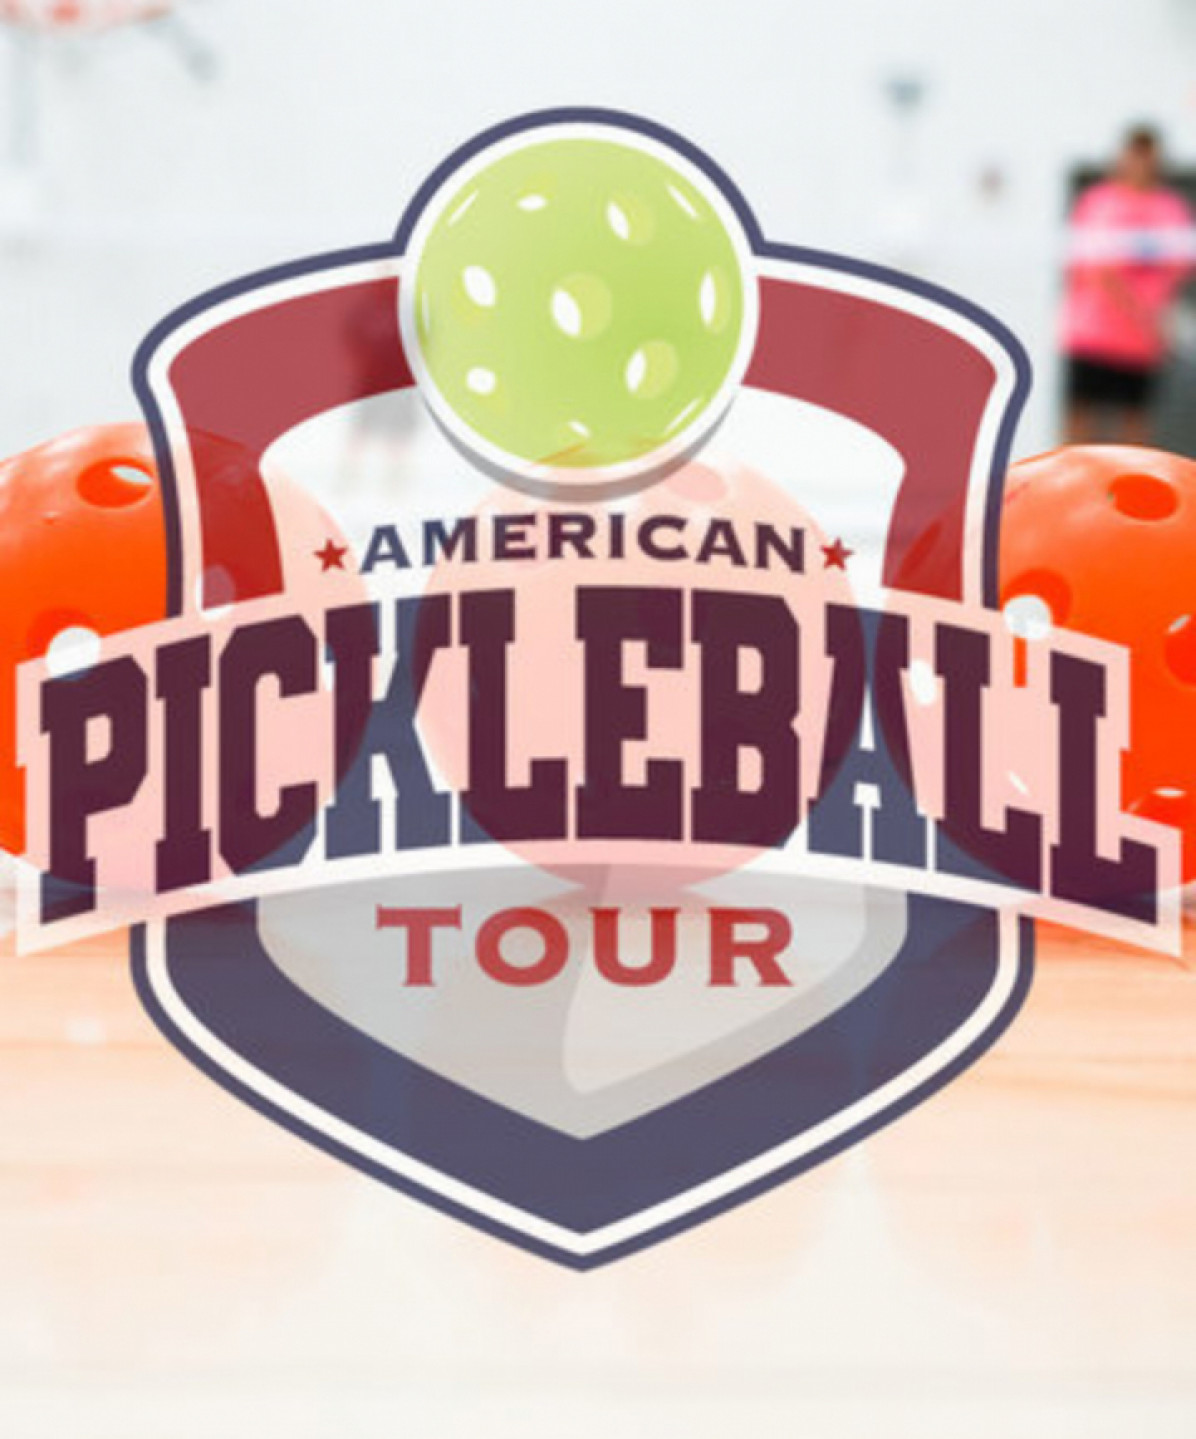 American Pickleball Tour Biloxi Ms 29 May 2020